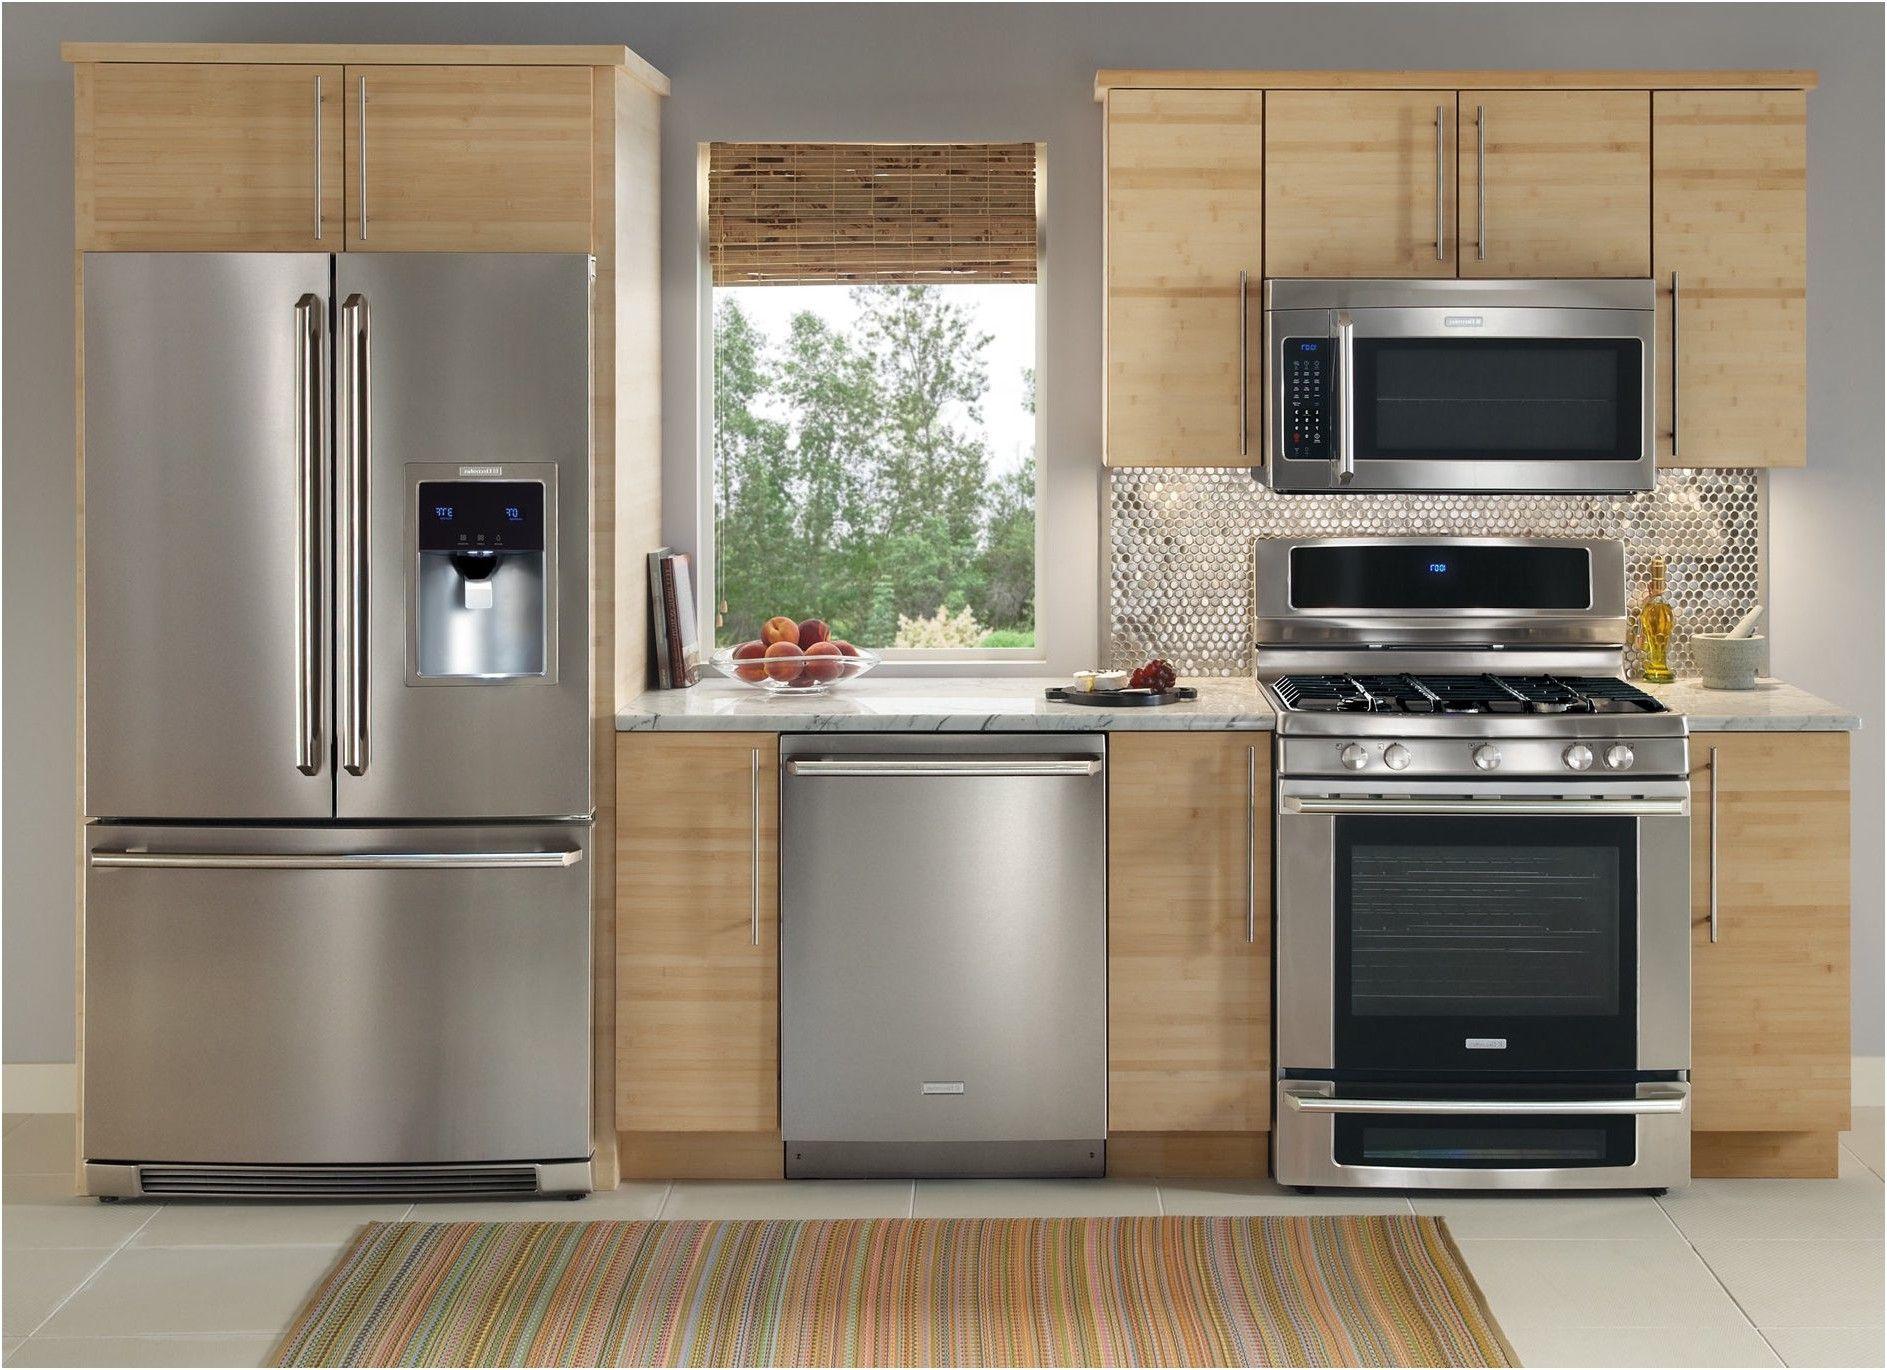 Superieur Kitchen Appliances Choosing The Best Brands For Your Luxury From What Is  The Best Brand Of Kitchen Appliances